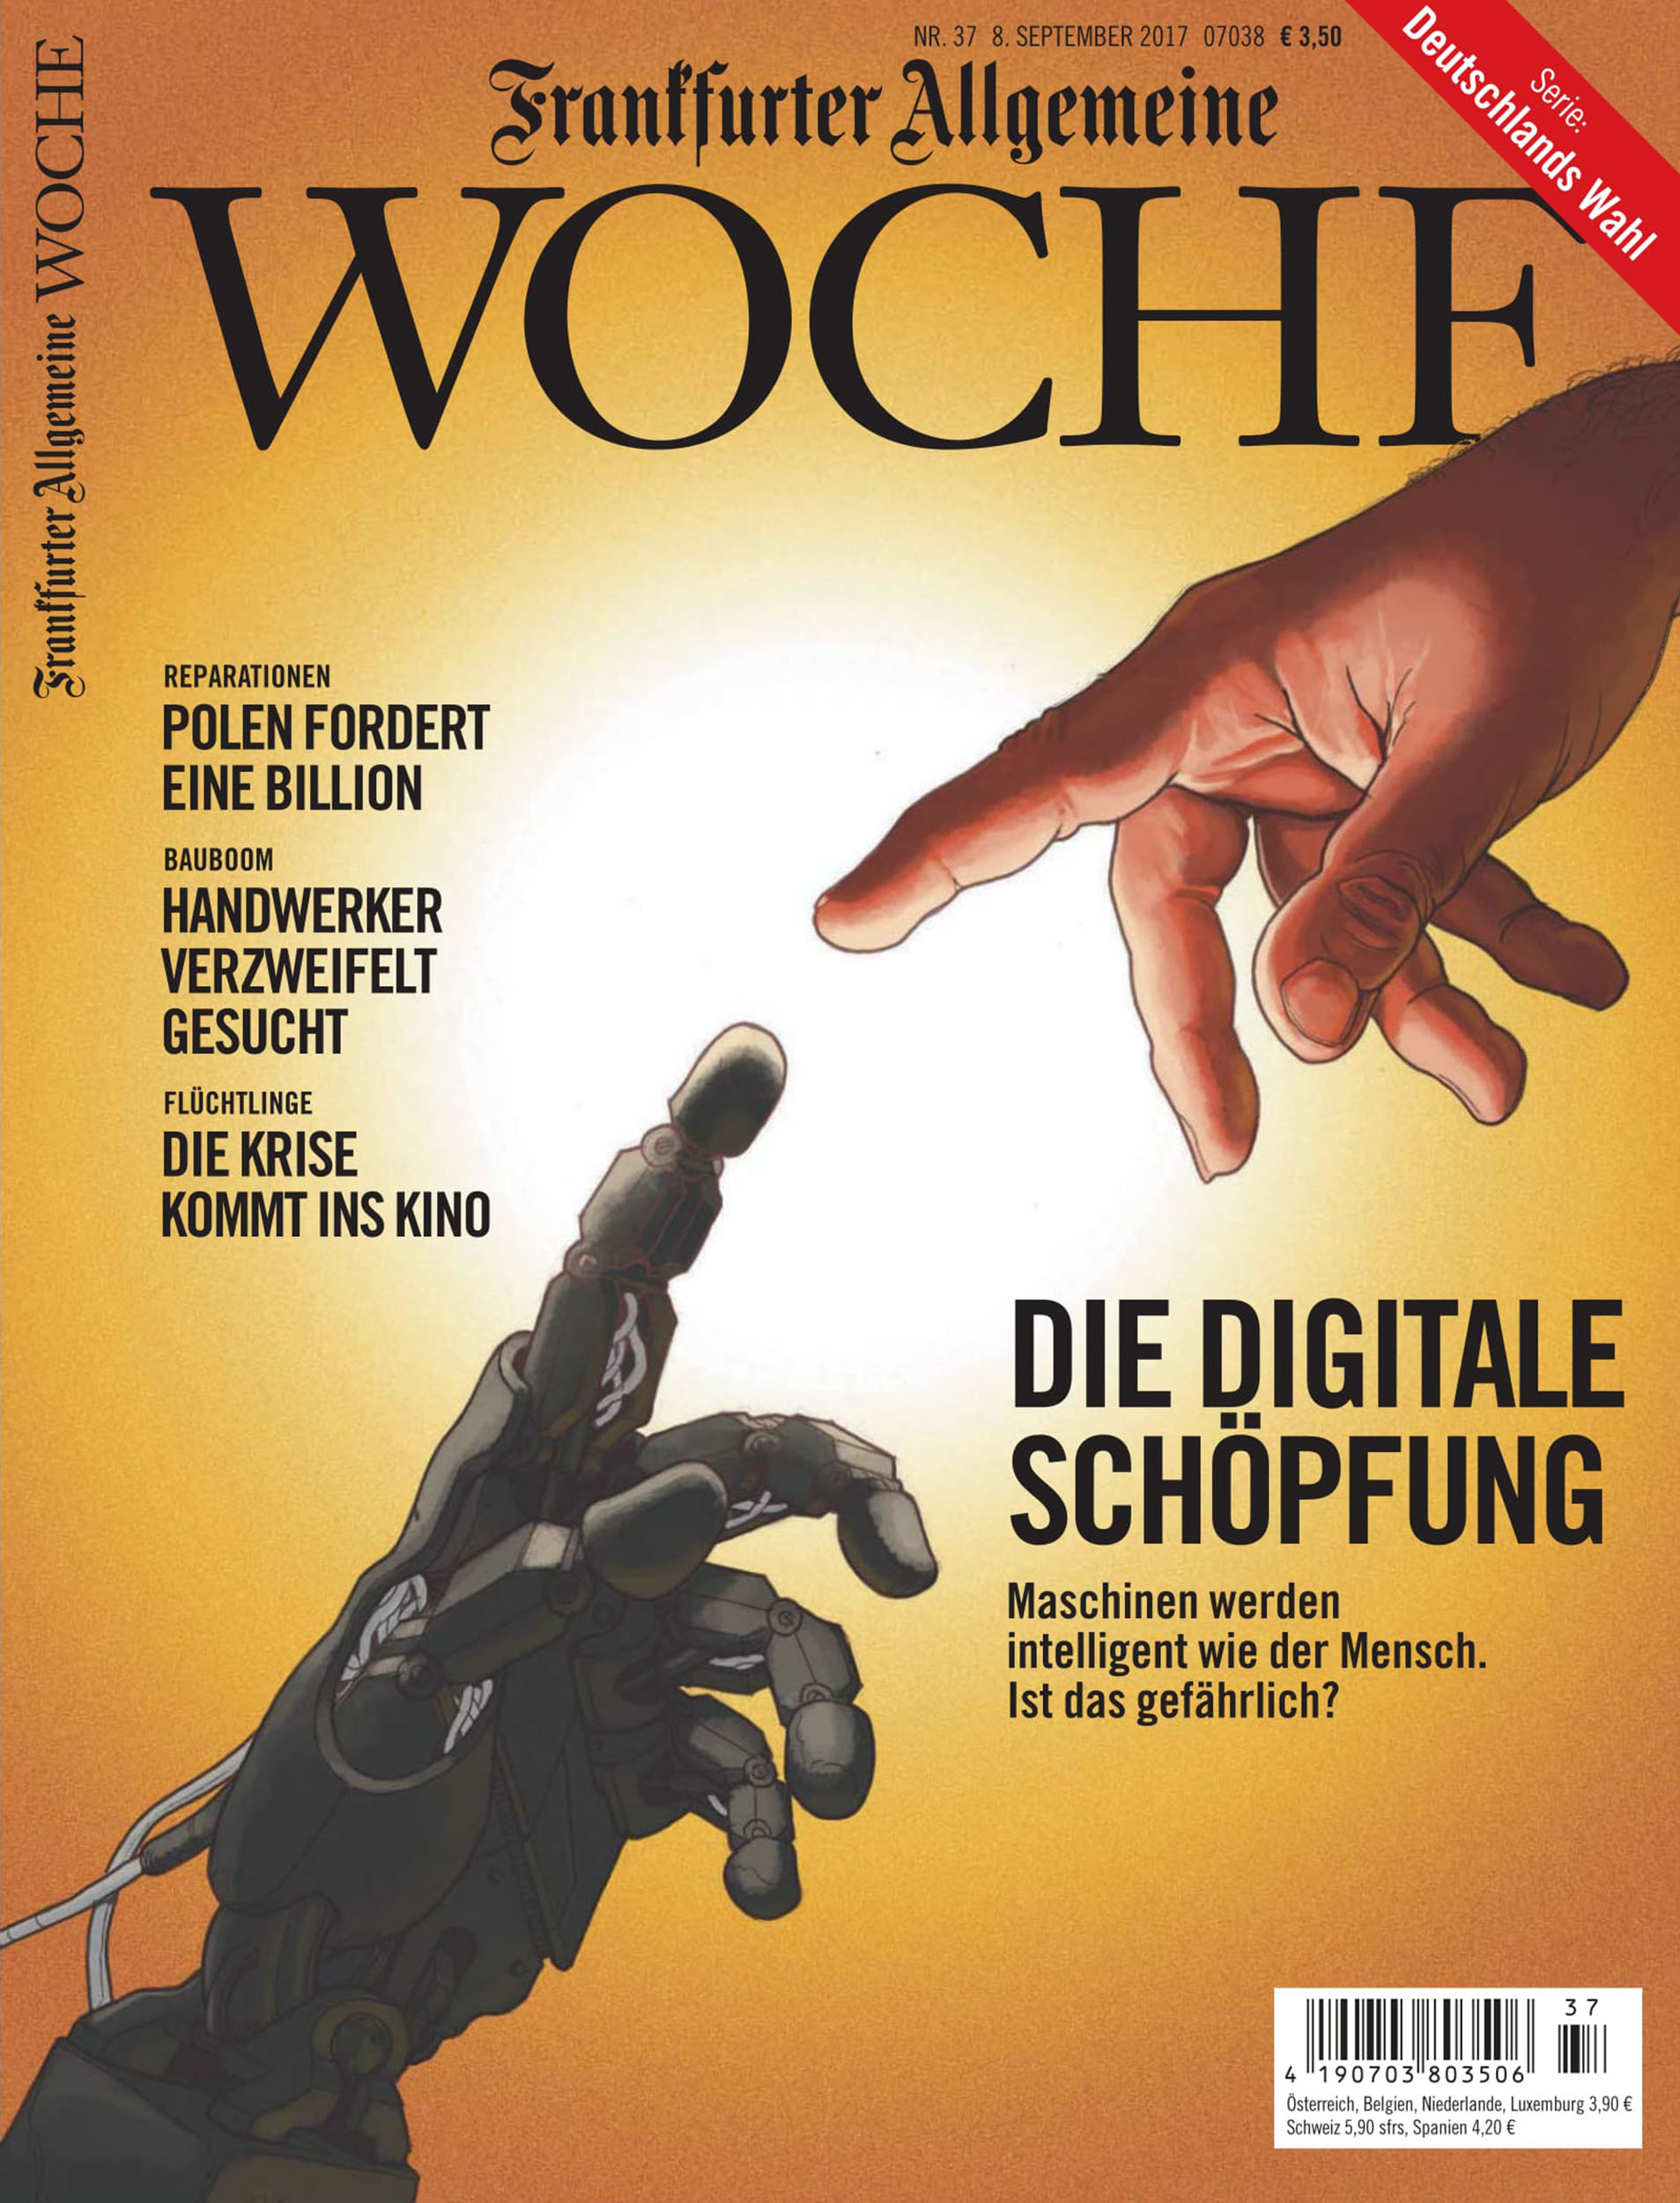 Daniel Garcia Art Illustration Frankfuter Allgemeine Woche Cover Magazine Robot Man Hand Technology 01